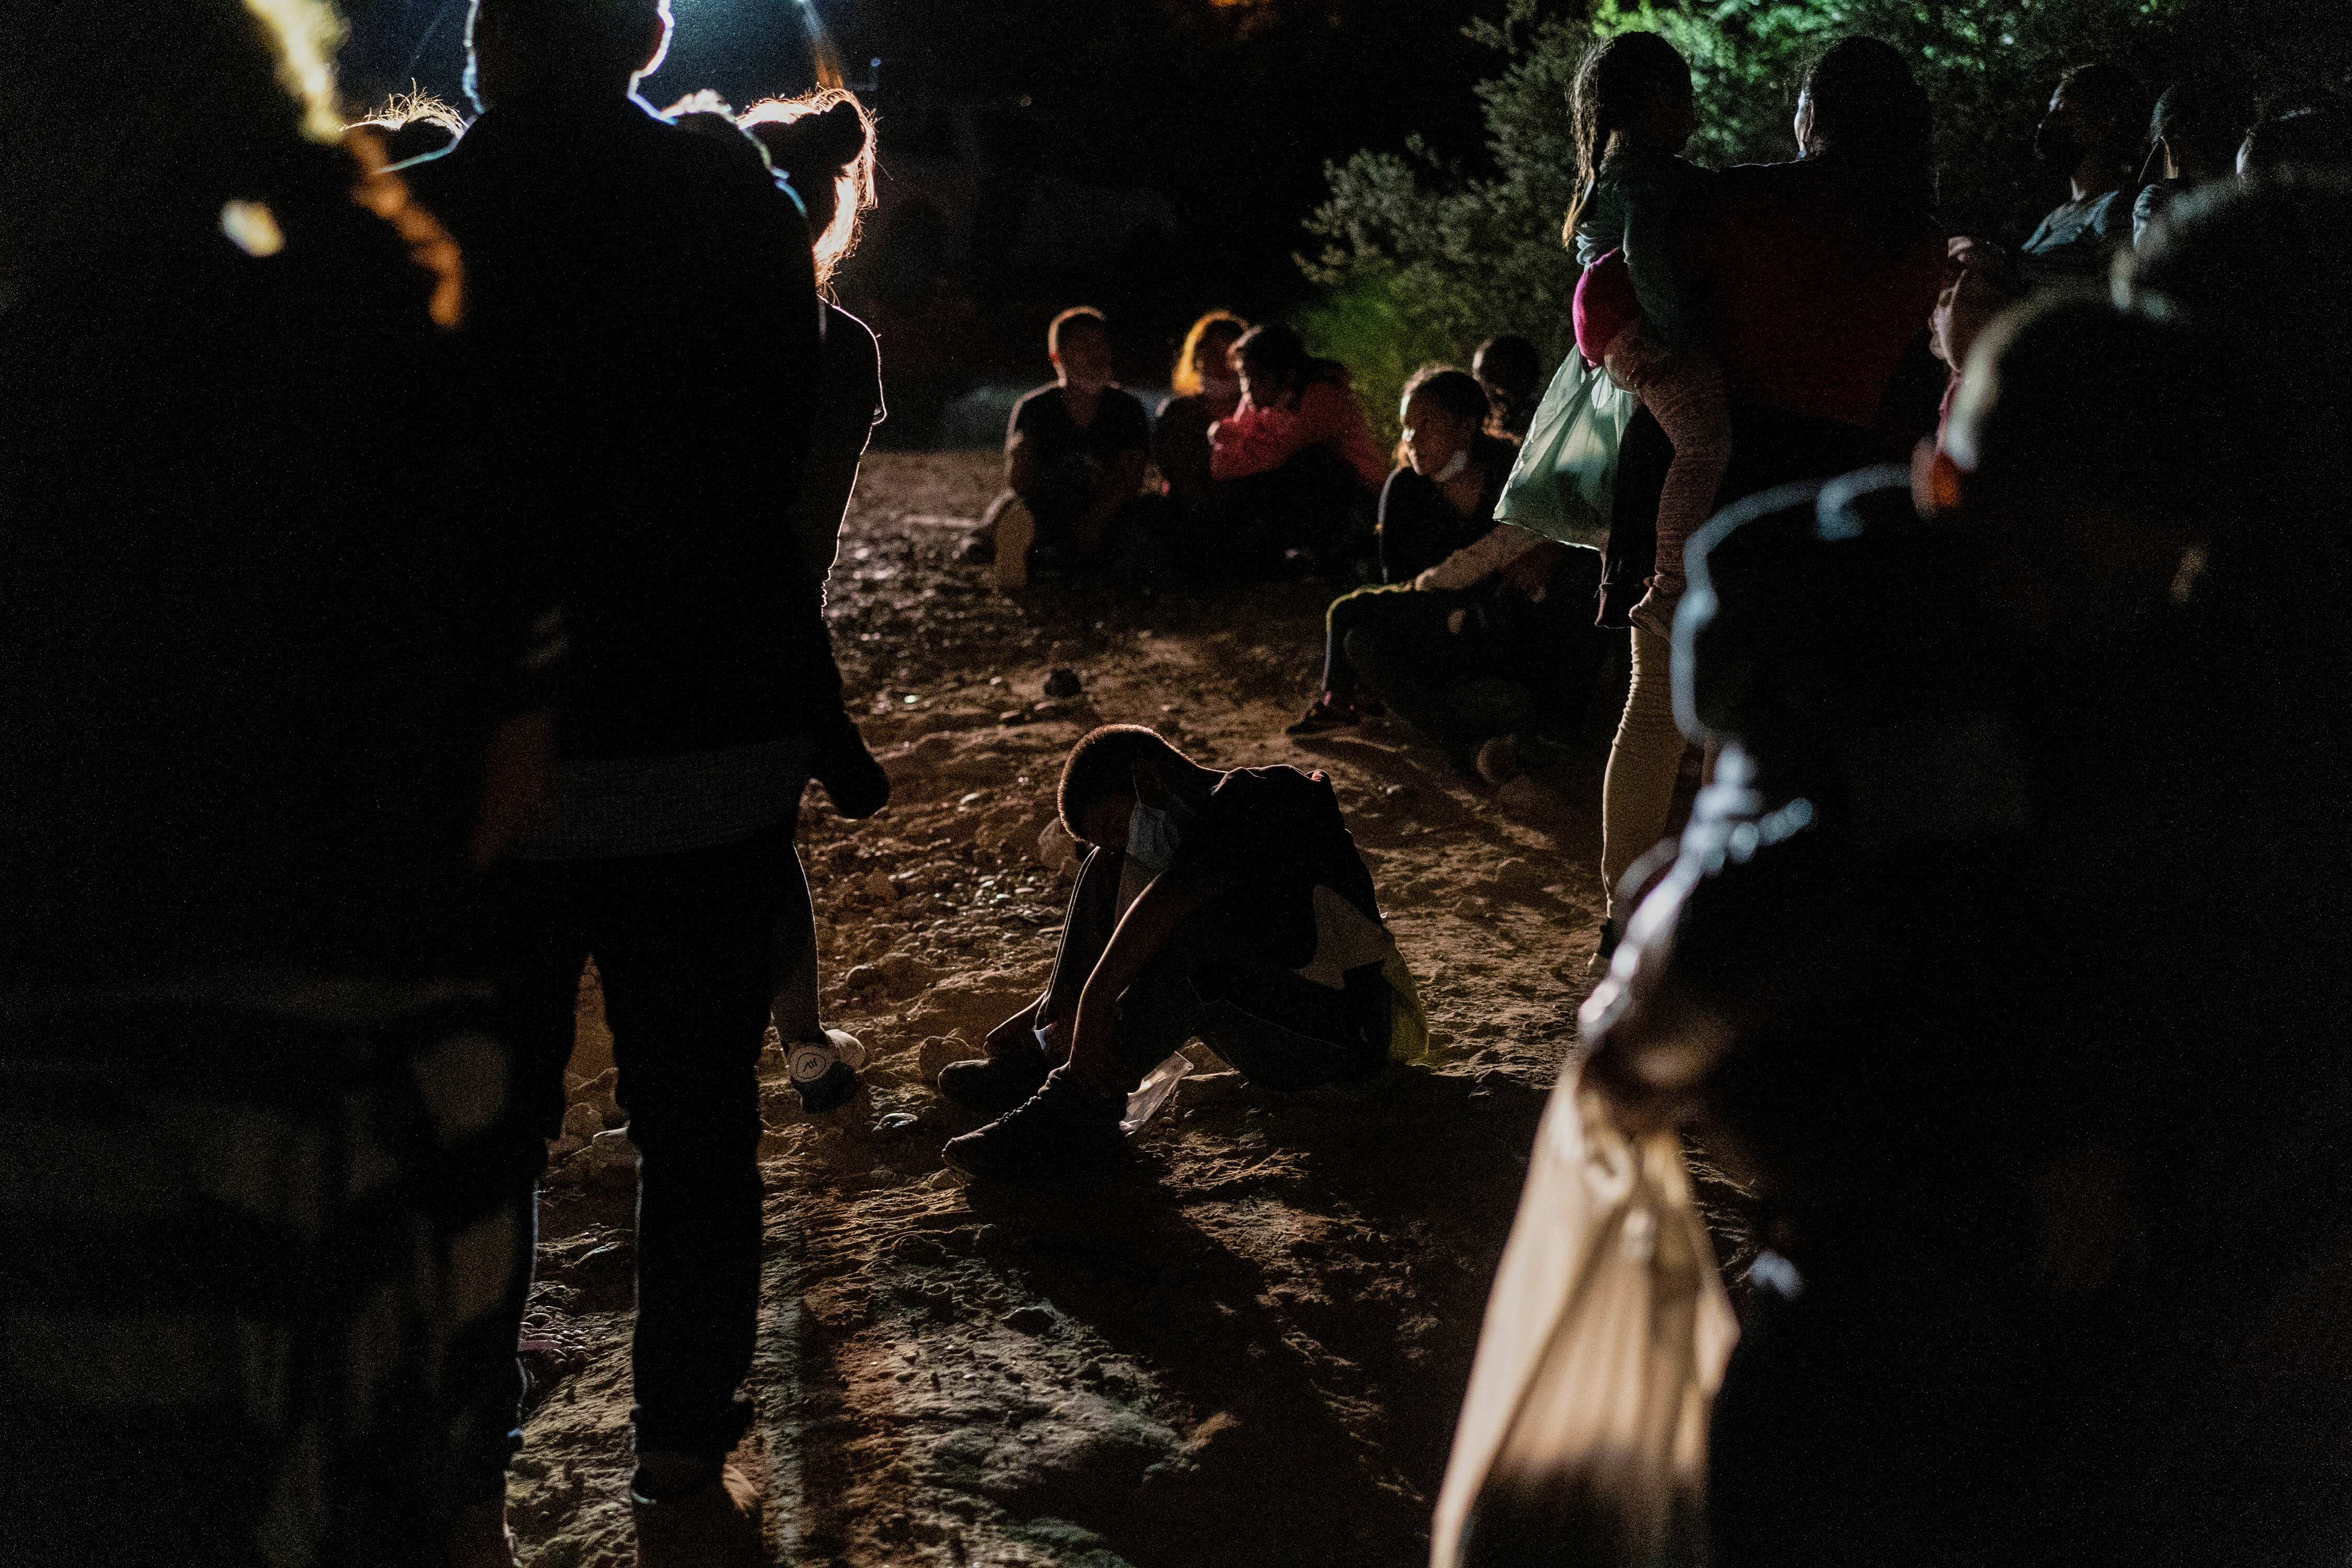 Asylum-seeking migrant families from Central America wait to be processed by the U.S. Border Patrol agents after crossing the Rio Grande river into the United States of America from Mexico in Roma, Texas, U.S., July 28, 2021. REUTERS/Go Nakamura